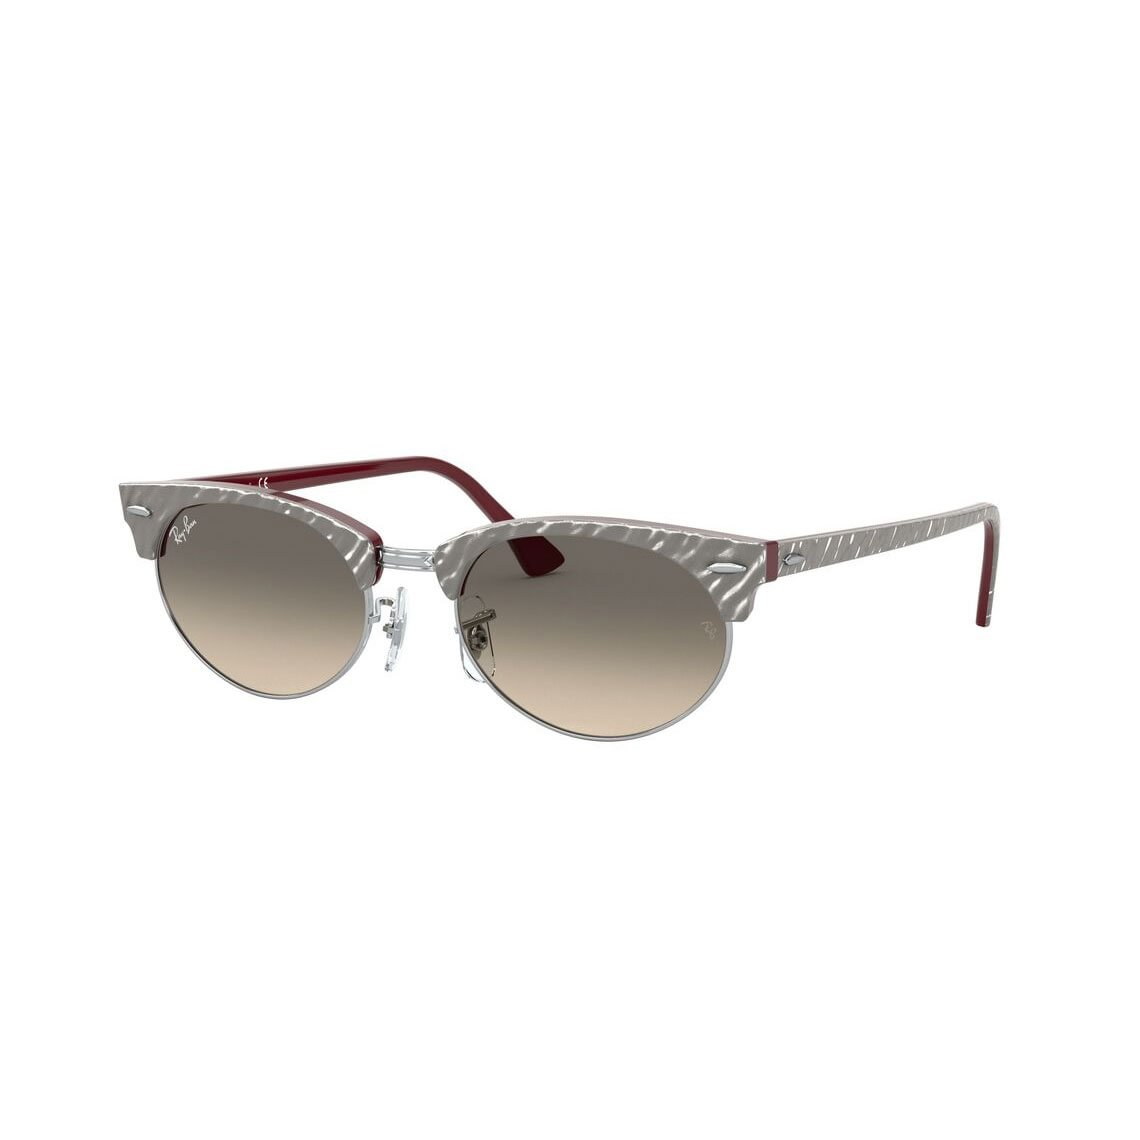 Ray-Ban Clubmaster Oval RB3946 130732 52